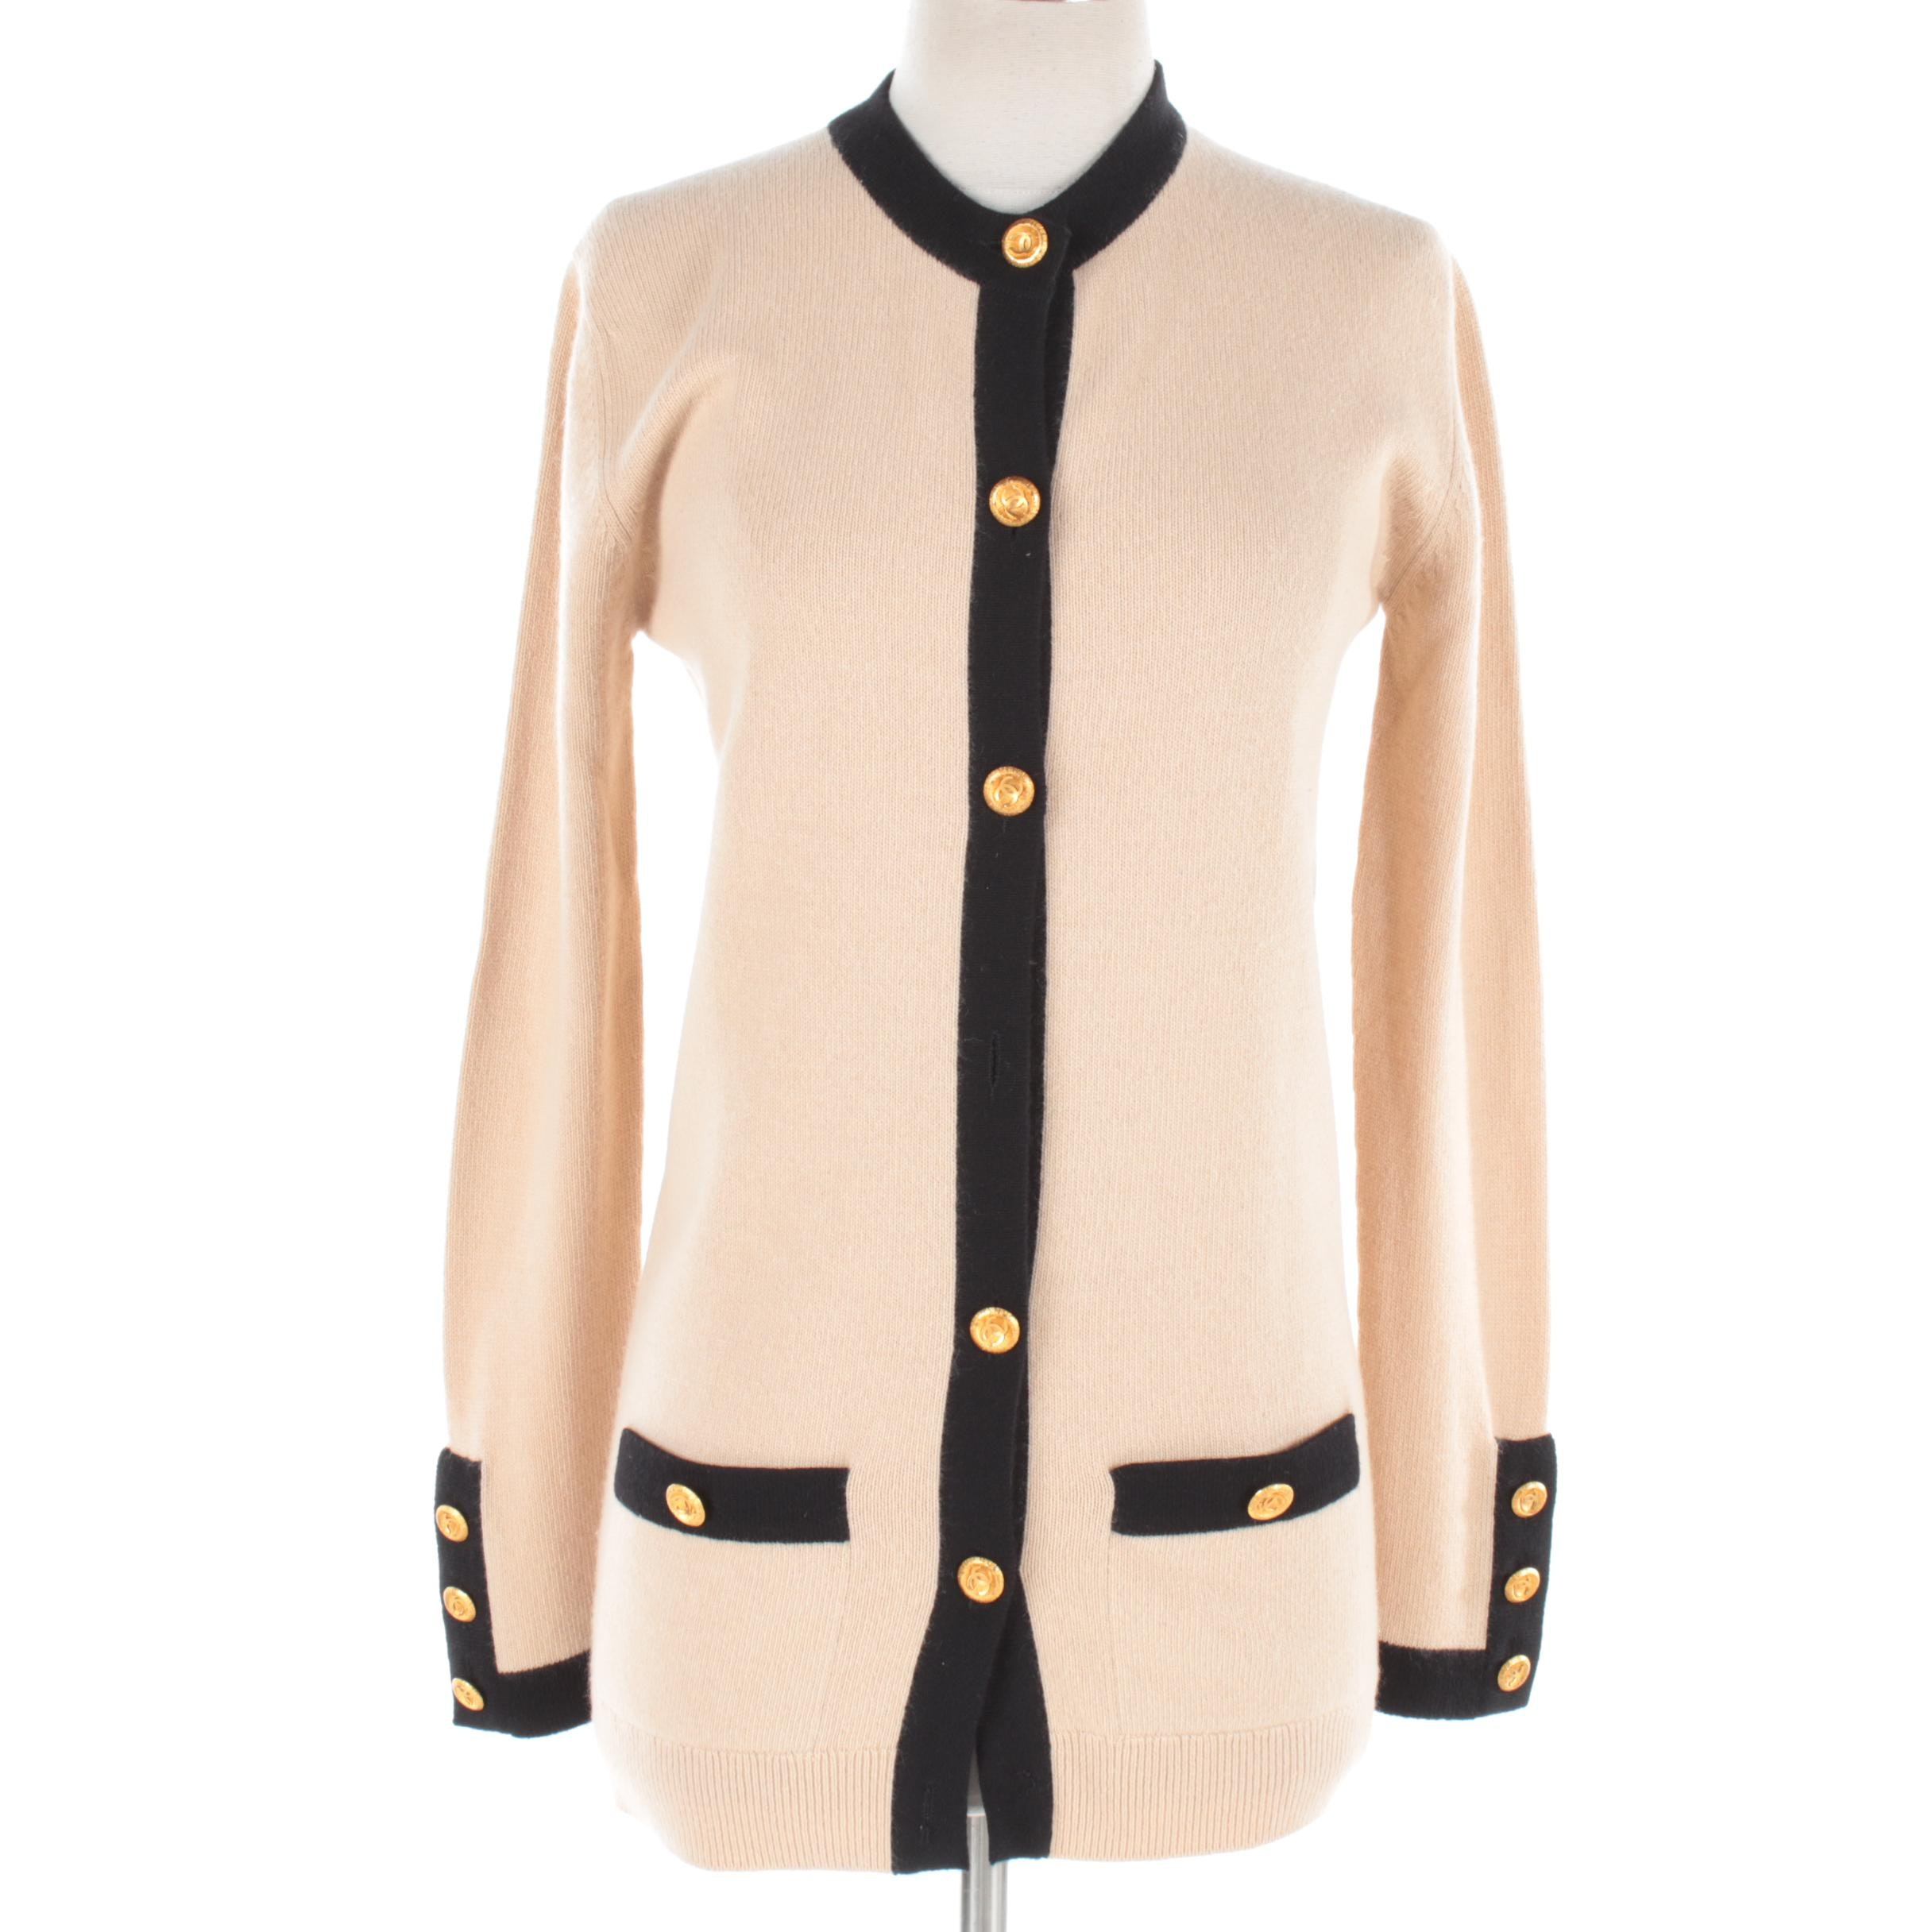 Chanel Beige Cardigan with Black Trim